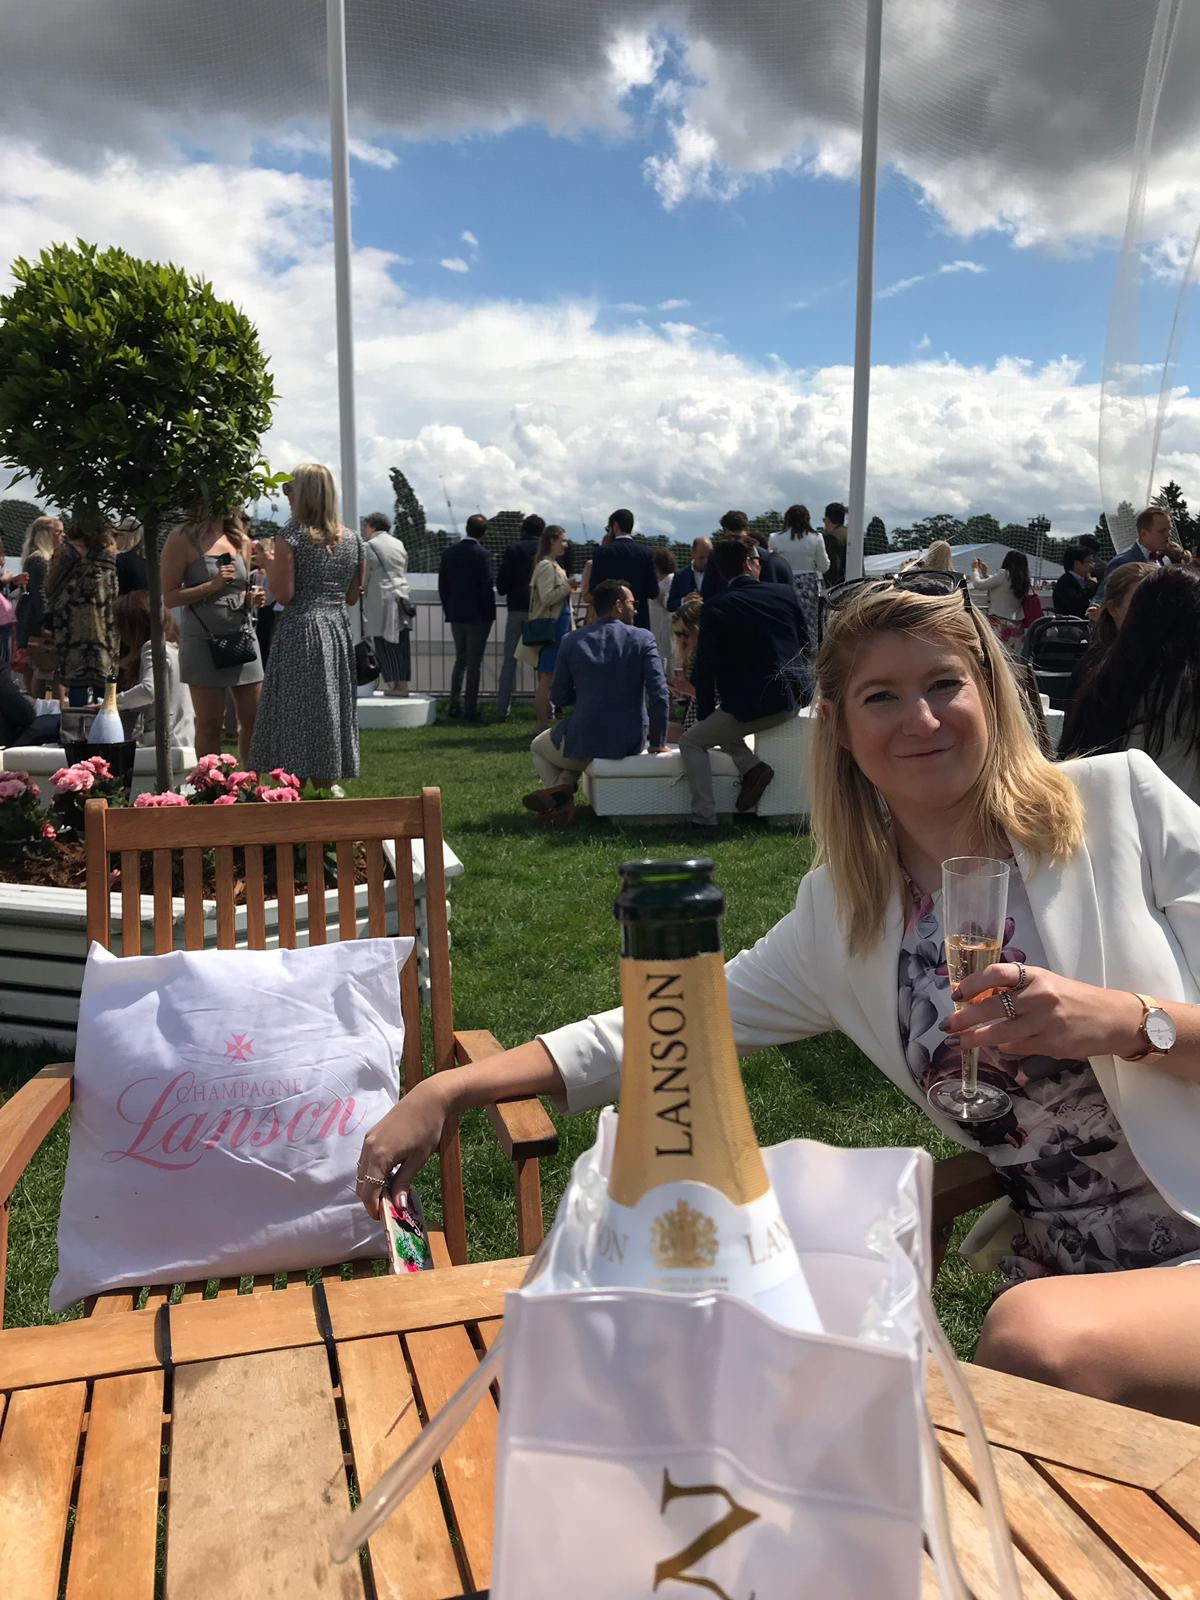 Lanson enclosure at Polo in the Park